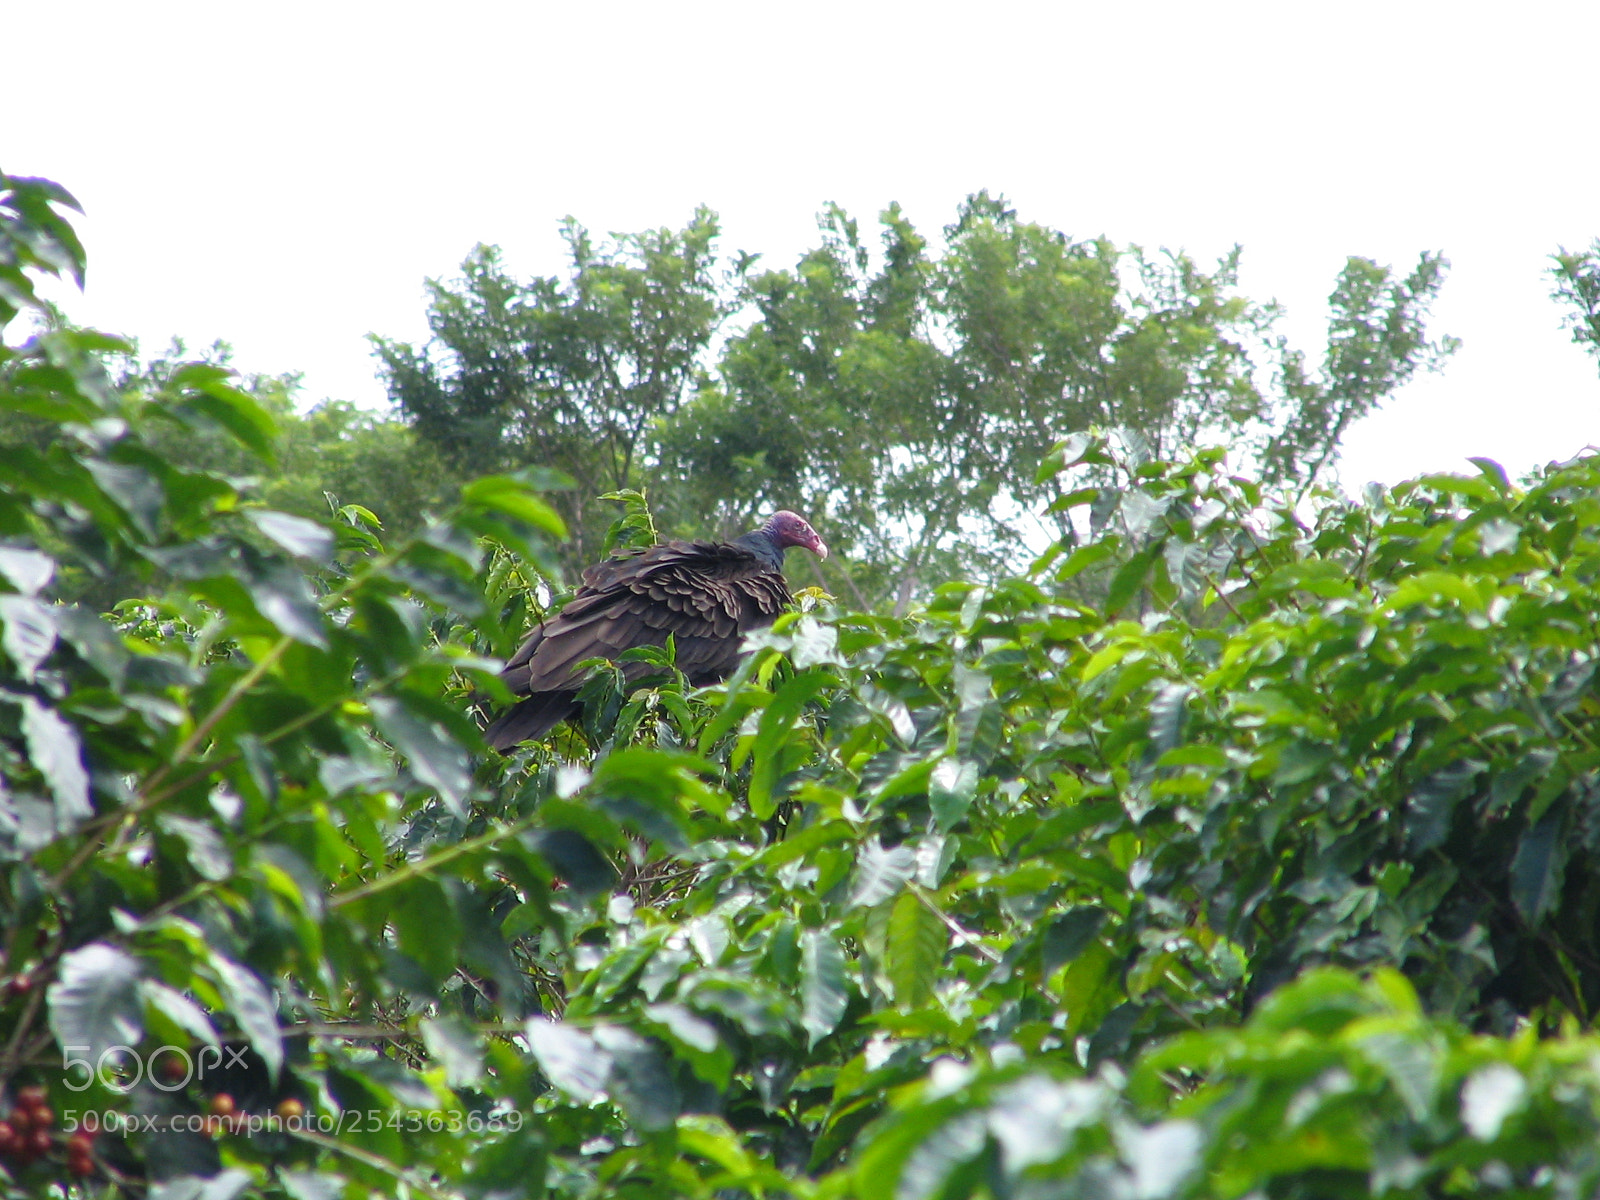 """Canon POWERSHOT S1 IS sample photo. """"Vulture on coffee plant"""" photography"""